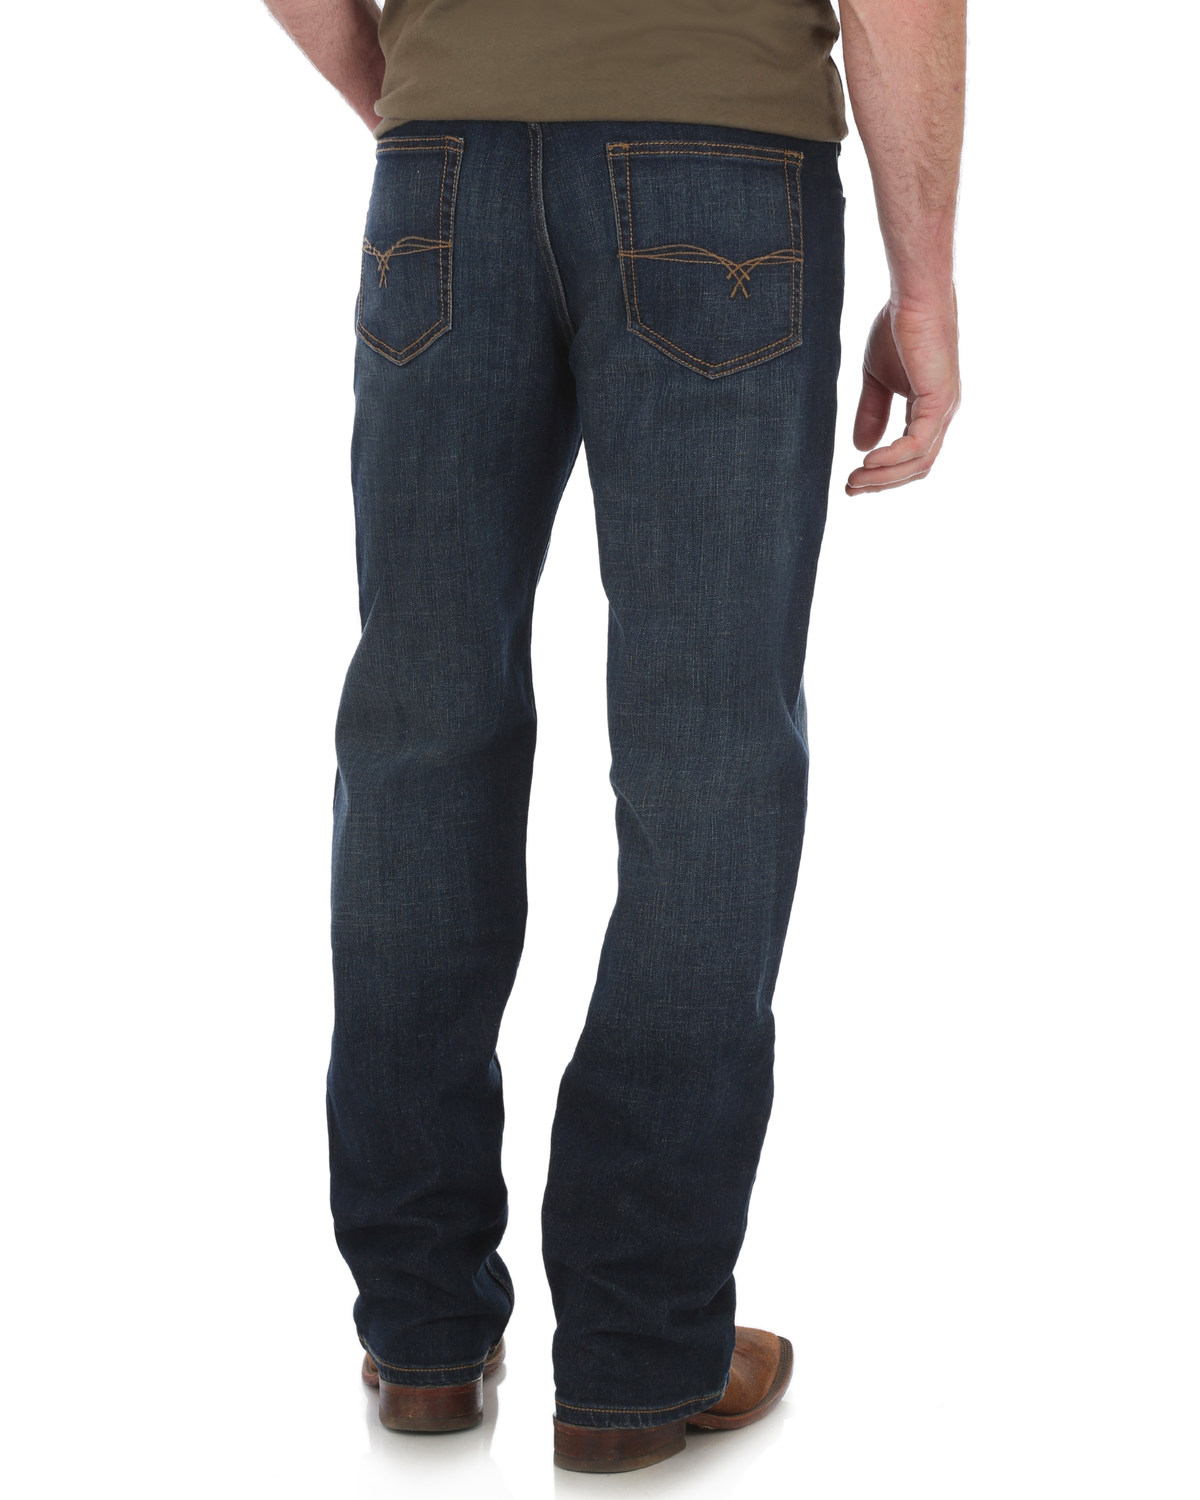 2f4bdc0fa18 Zoomed Image Wrangler 20X Men's No. 33 Relaxed Fit Boot Cut Jeans , Blue,  hi-